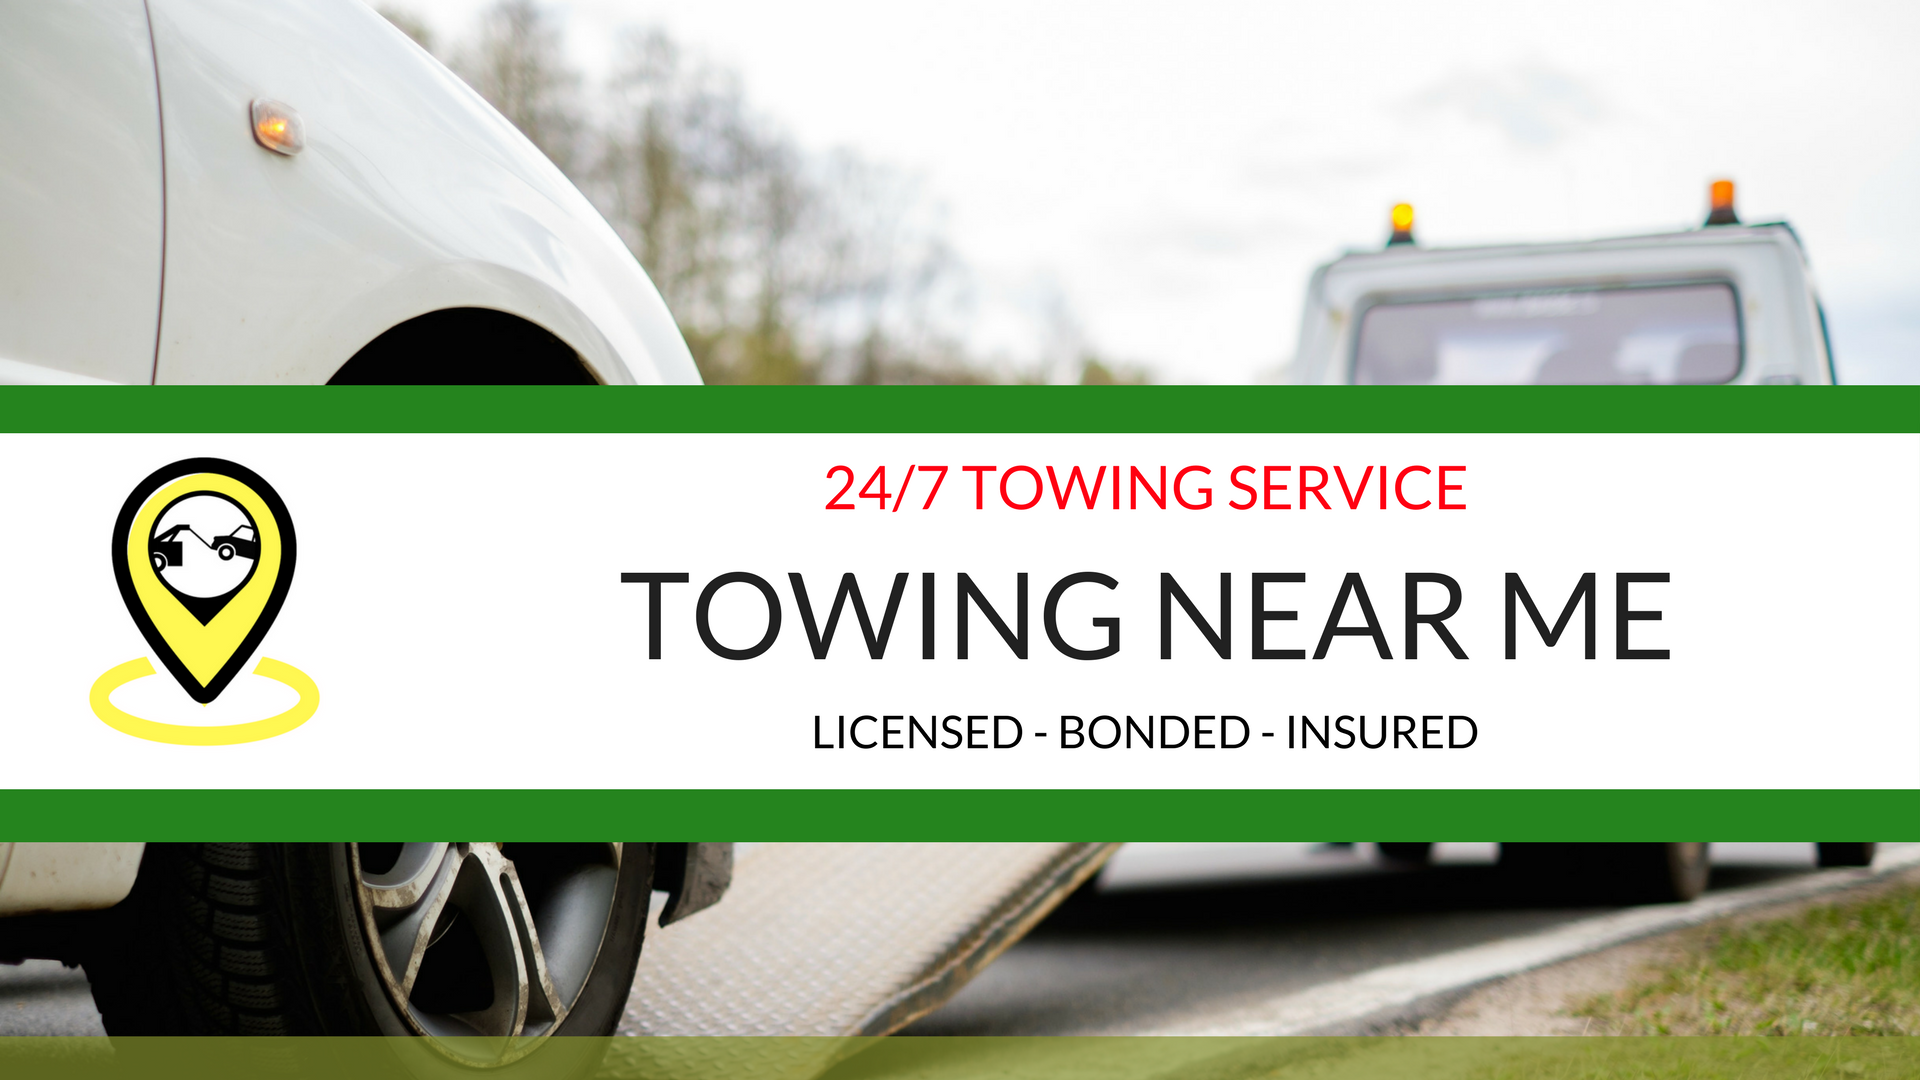 24/7 Towing Service Licensed, Bonded and Insured! Find